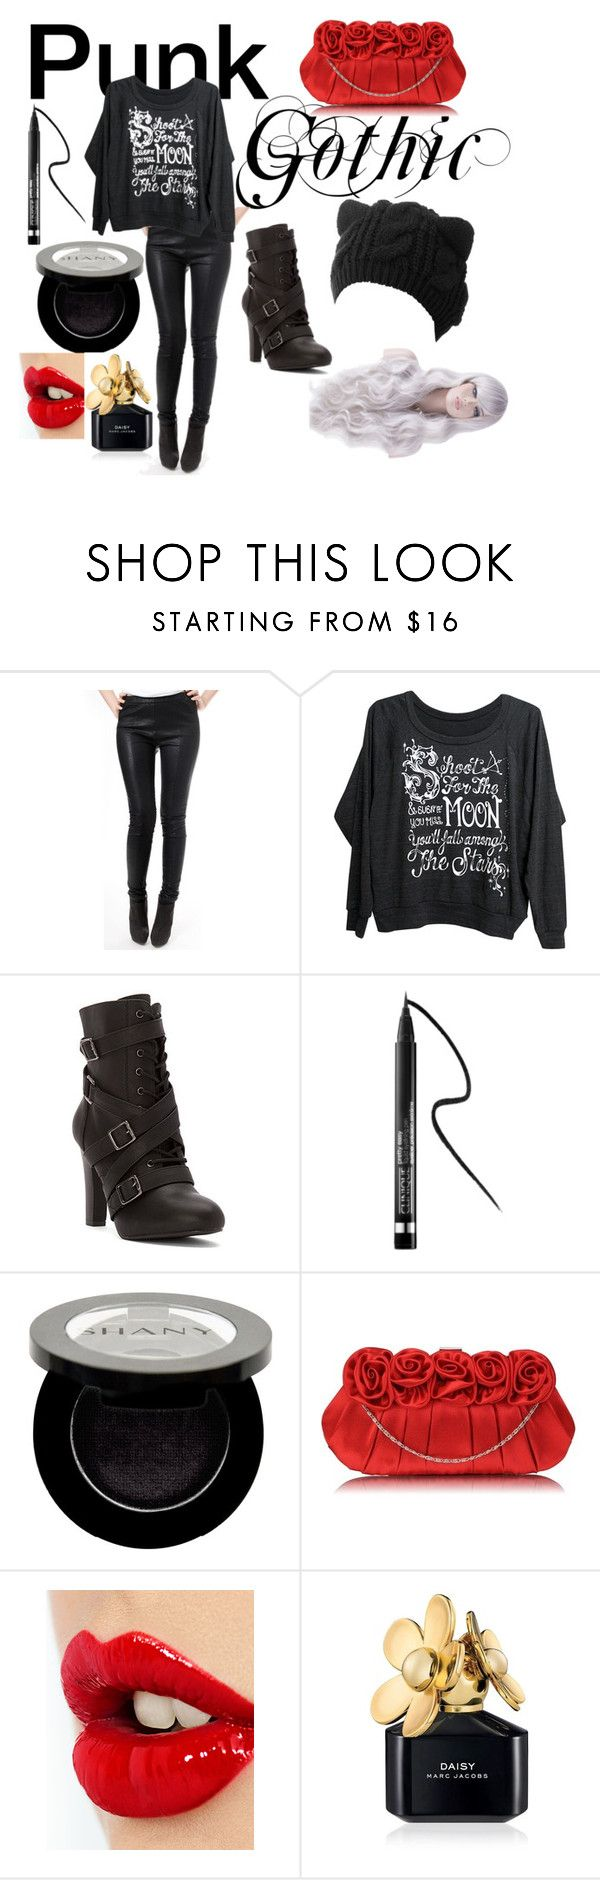 """""""Punk Outfit"""" by lavenderwrites ❤ liked on Polyvore featuring Mad Love, Mojo Moxy, Clinique, Shany, Charlotte Tilbury, Marc Jacobs, women's clothing, women, female and woman"""